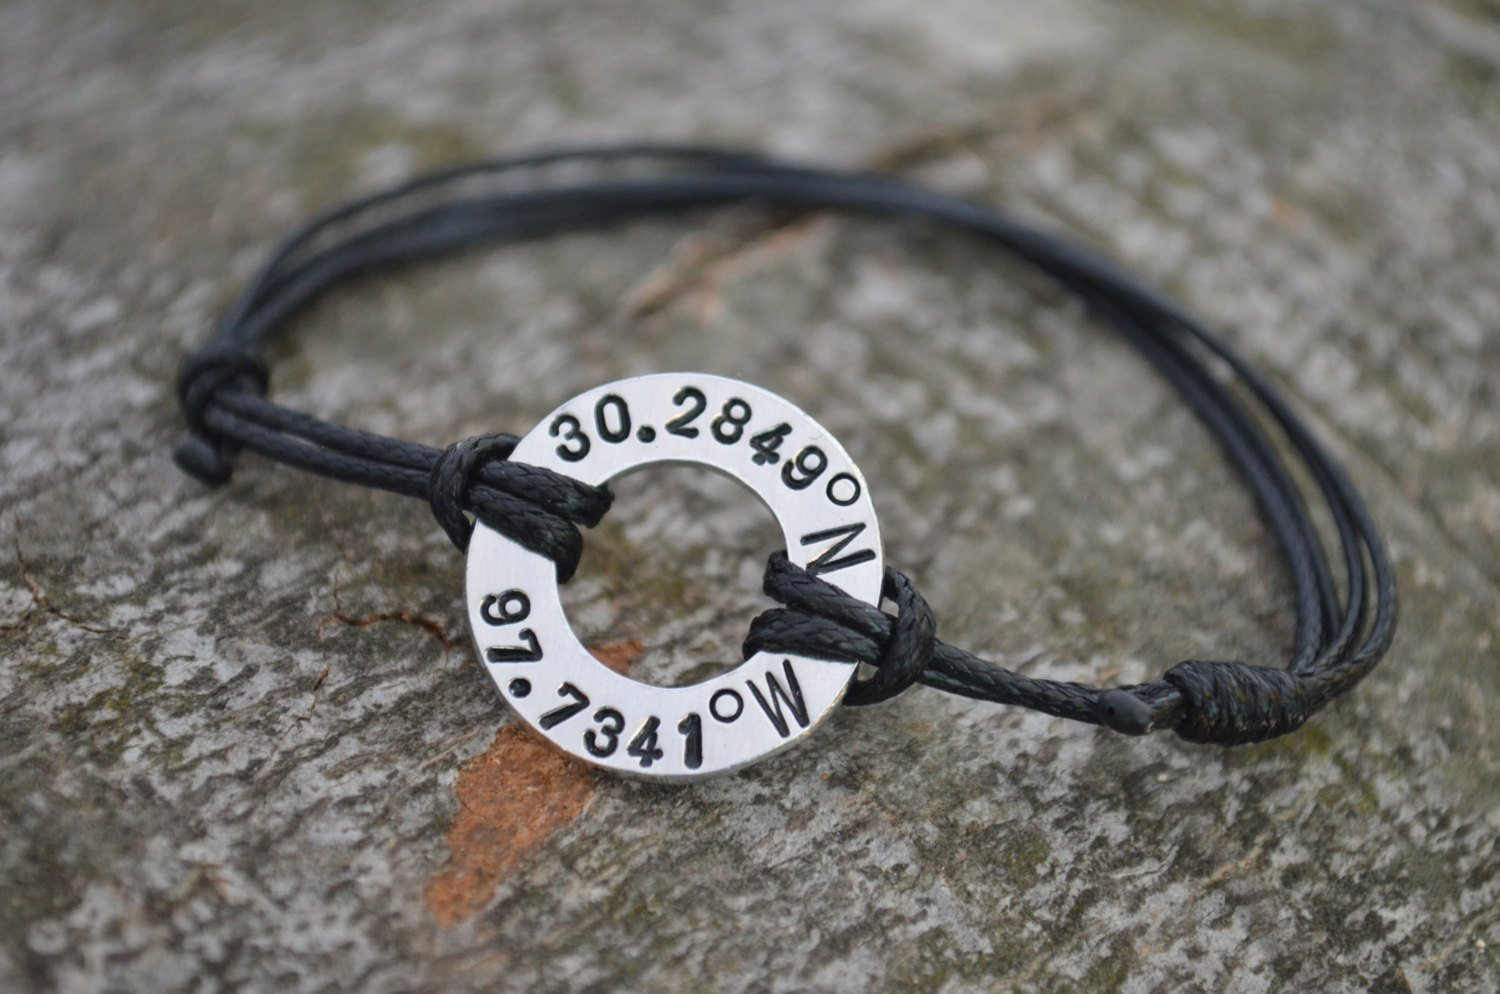 A unisex coordinate bracelet is strongly recommended to be a good anniversary gift idea for couples, especially for those being in a long-distance relationship. This handmade anniversary bracelet with the latitude and longitude of a special place can remind you of the place where you fell in love with each other.